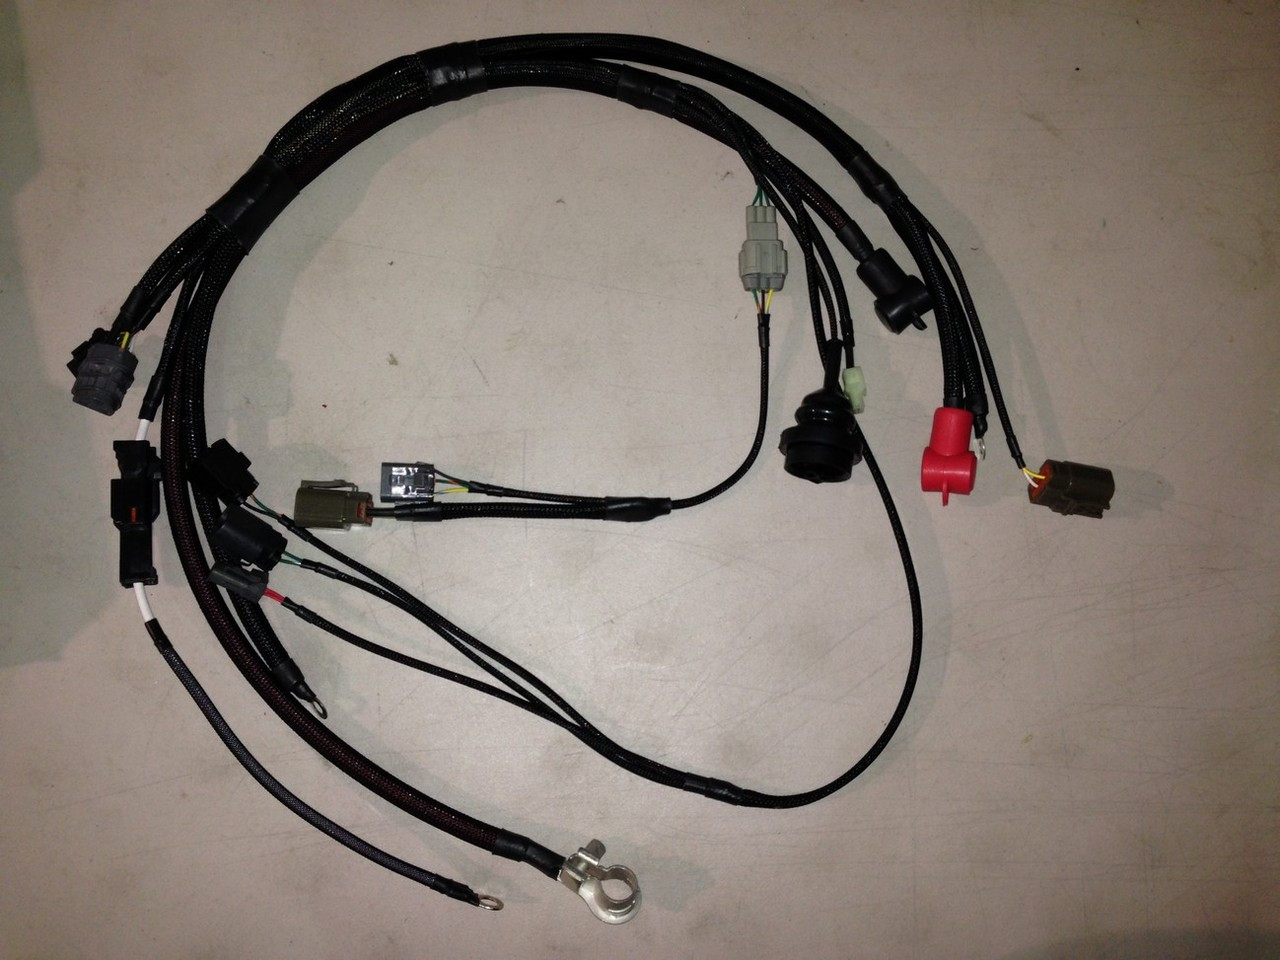 Wiring Specialties Rb25det Wire Data Schema Diagram Into S14 240sx Silvia Pre Made Rh 240sxmotoring Com Rb25 S13